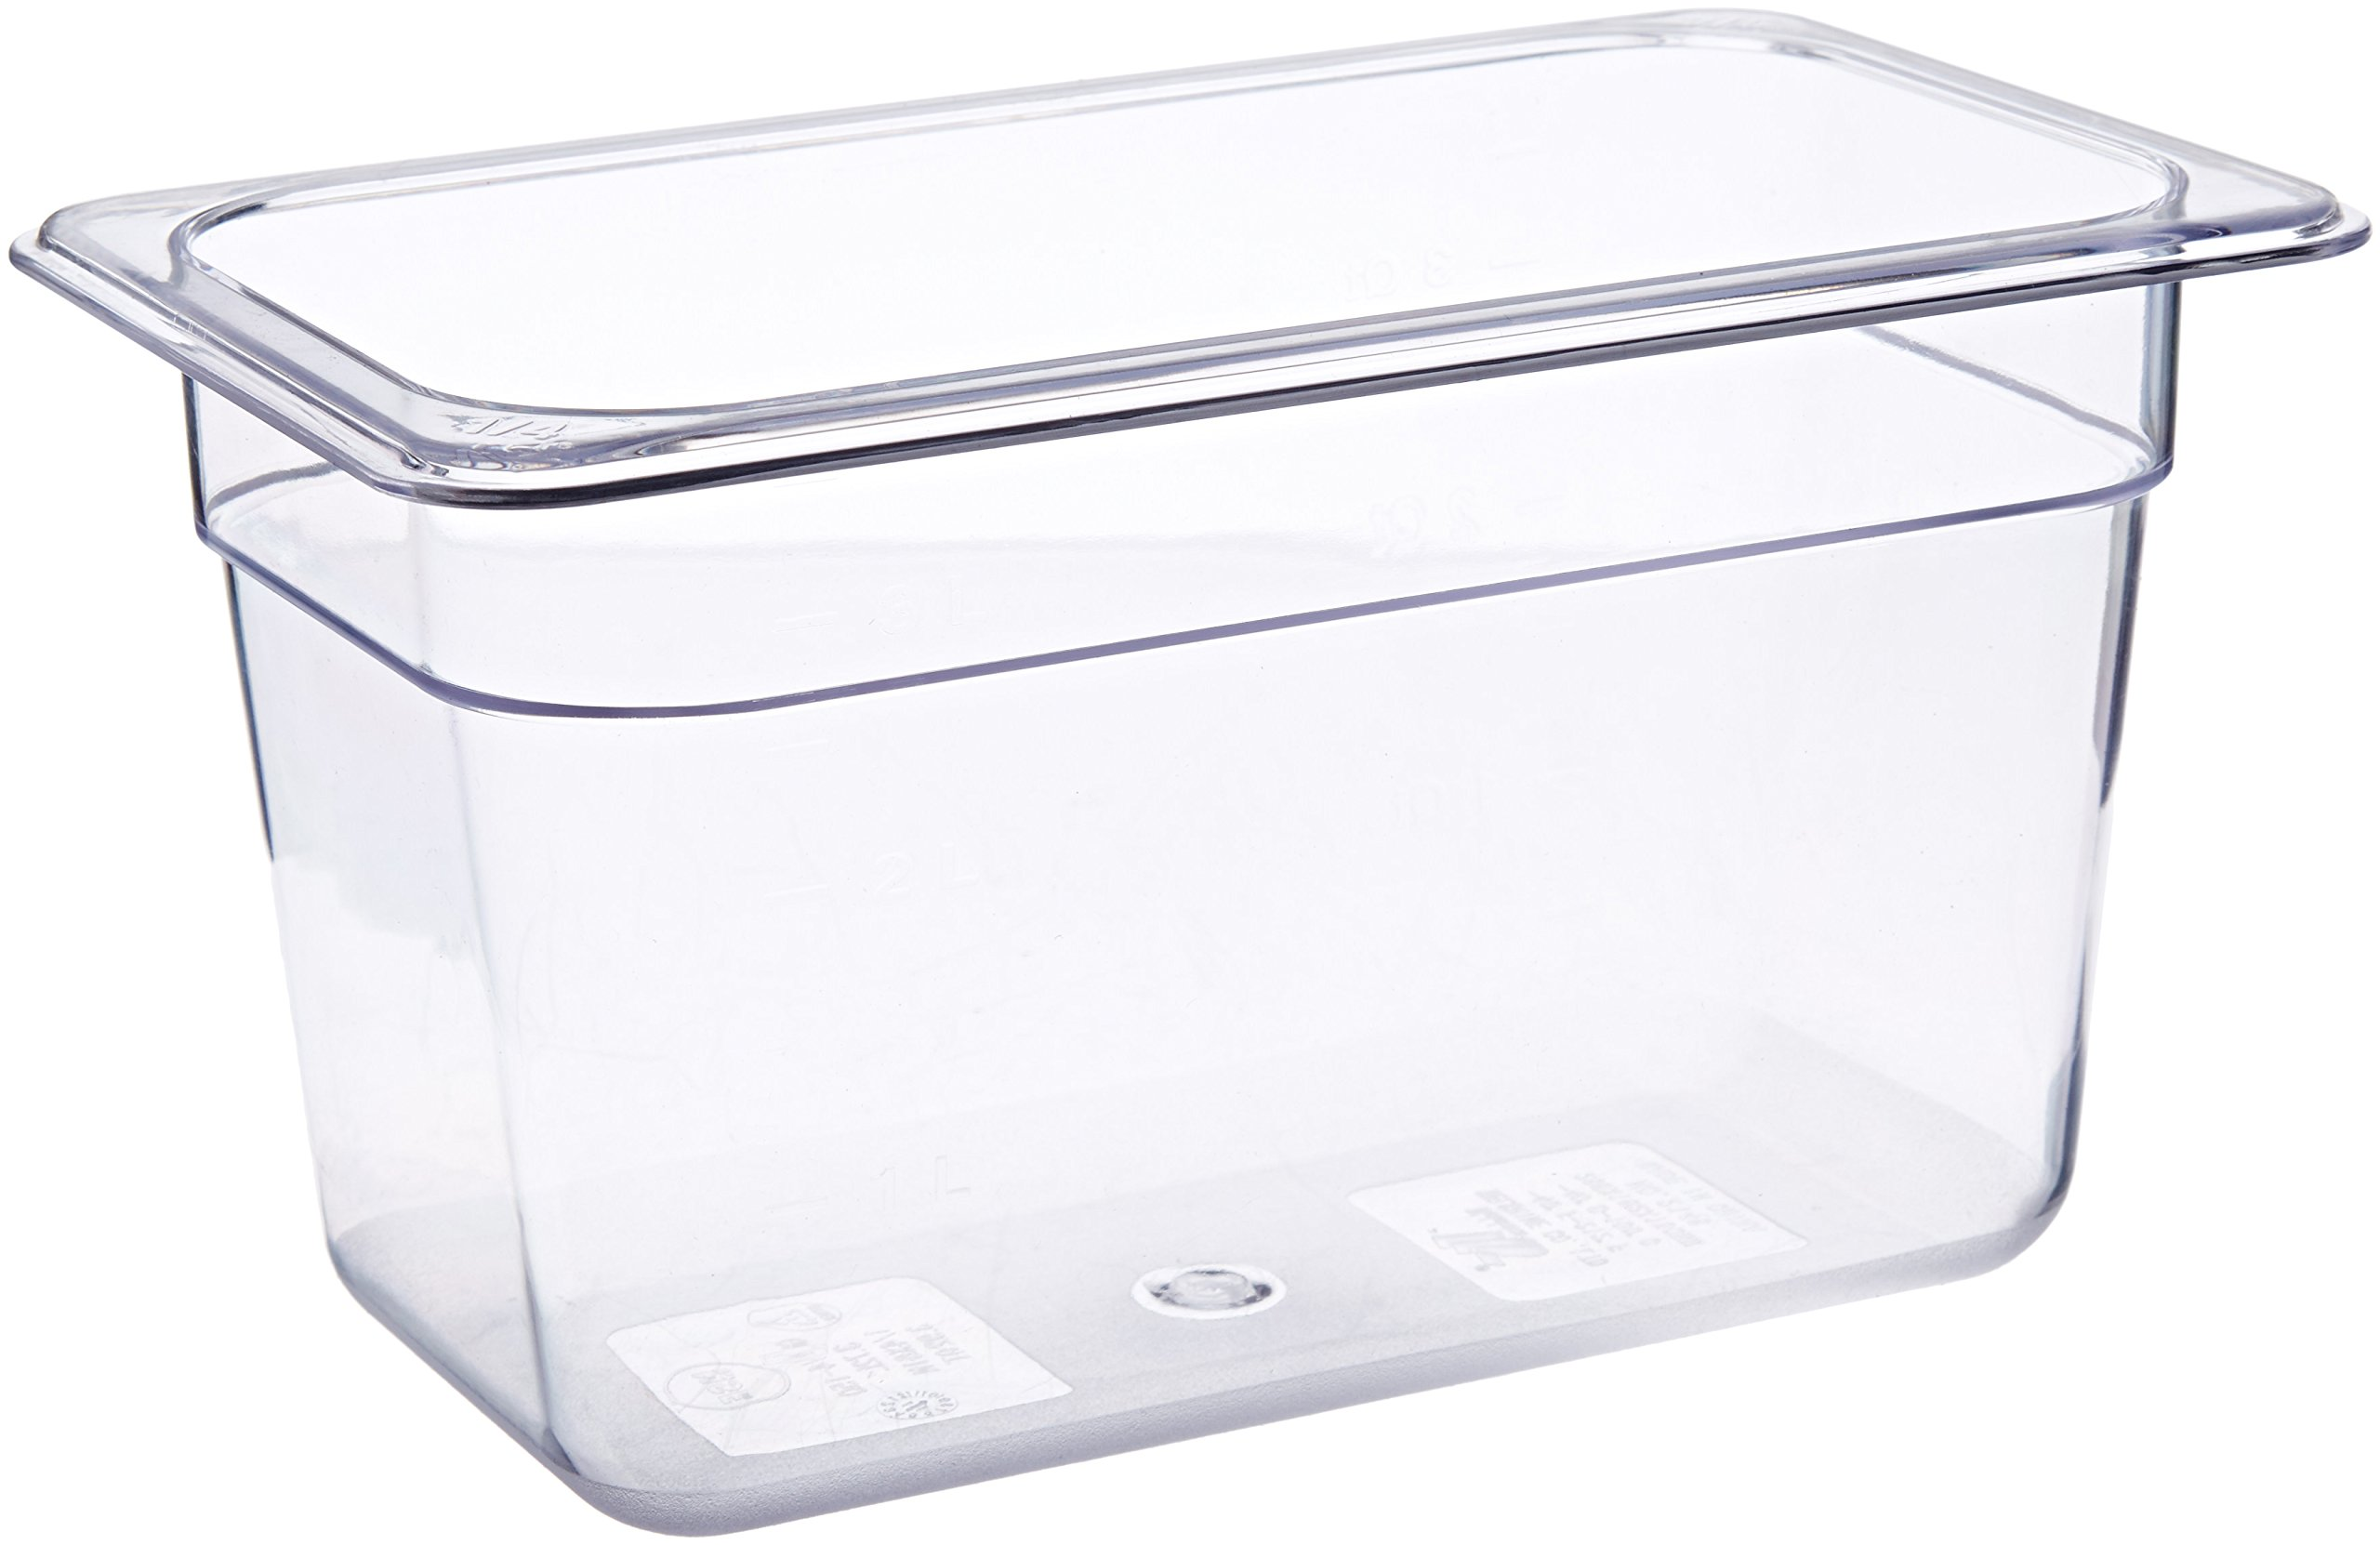 Crestware Polycarbonate Food Pan Fourth Size 6-Inch